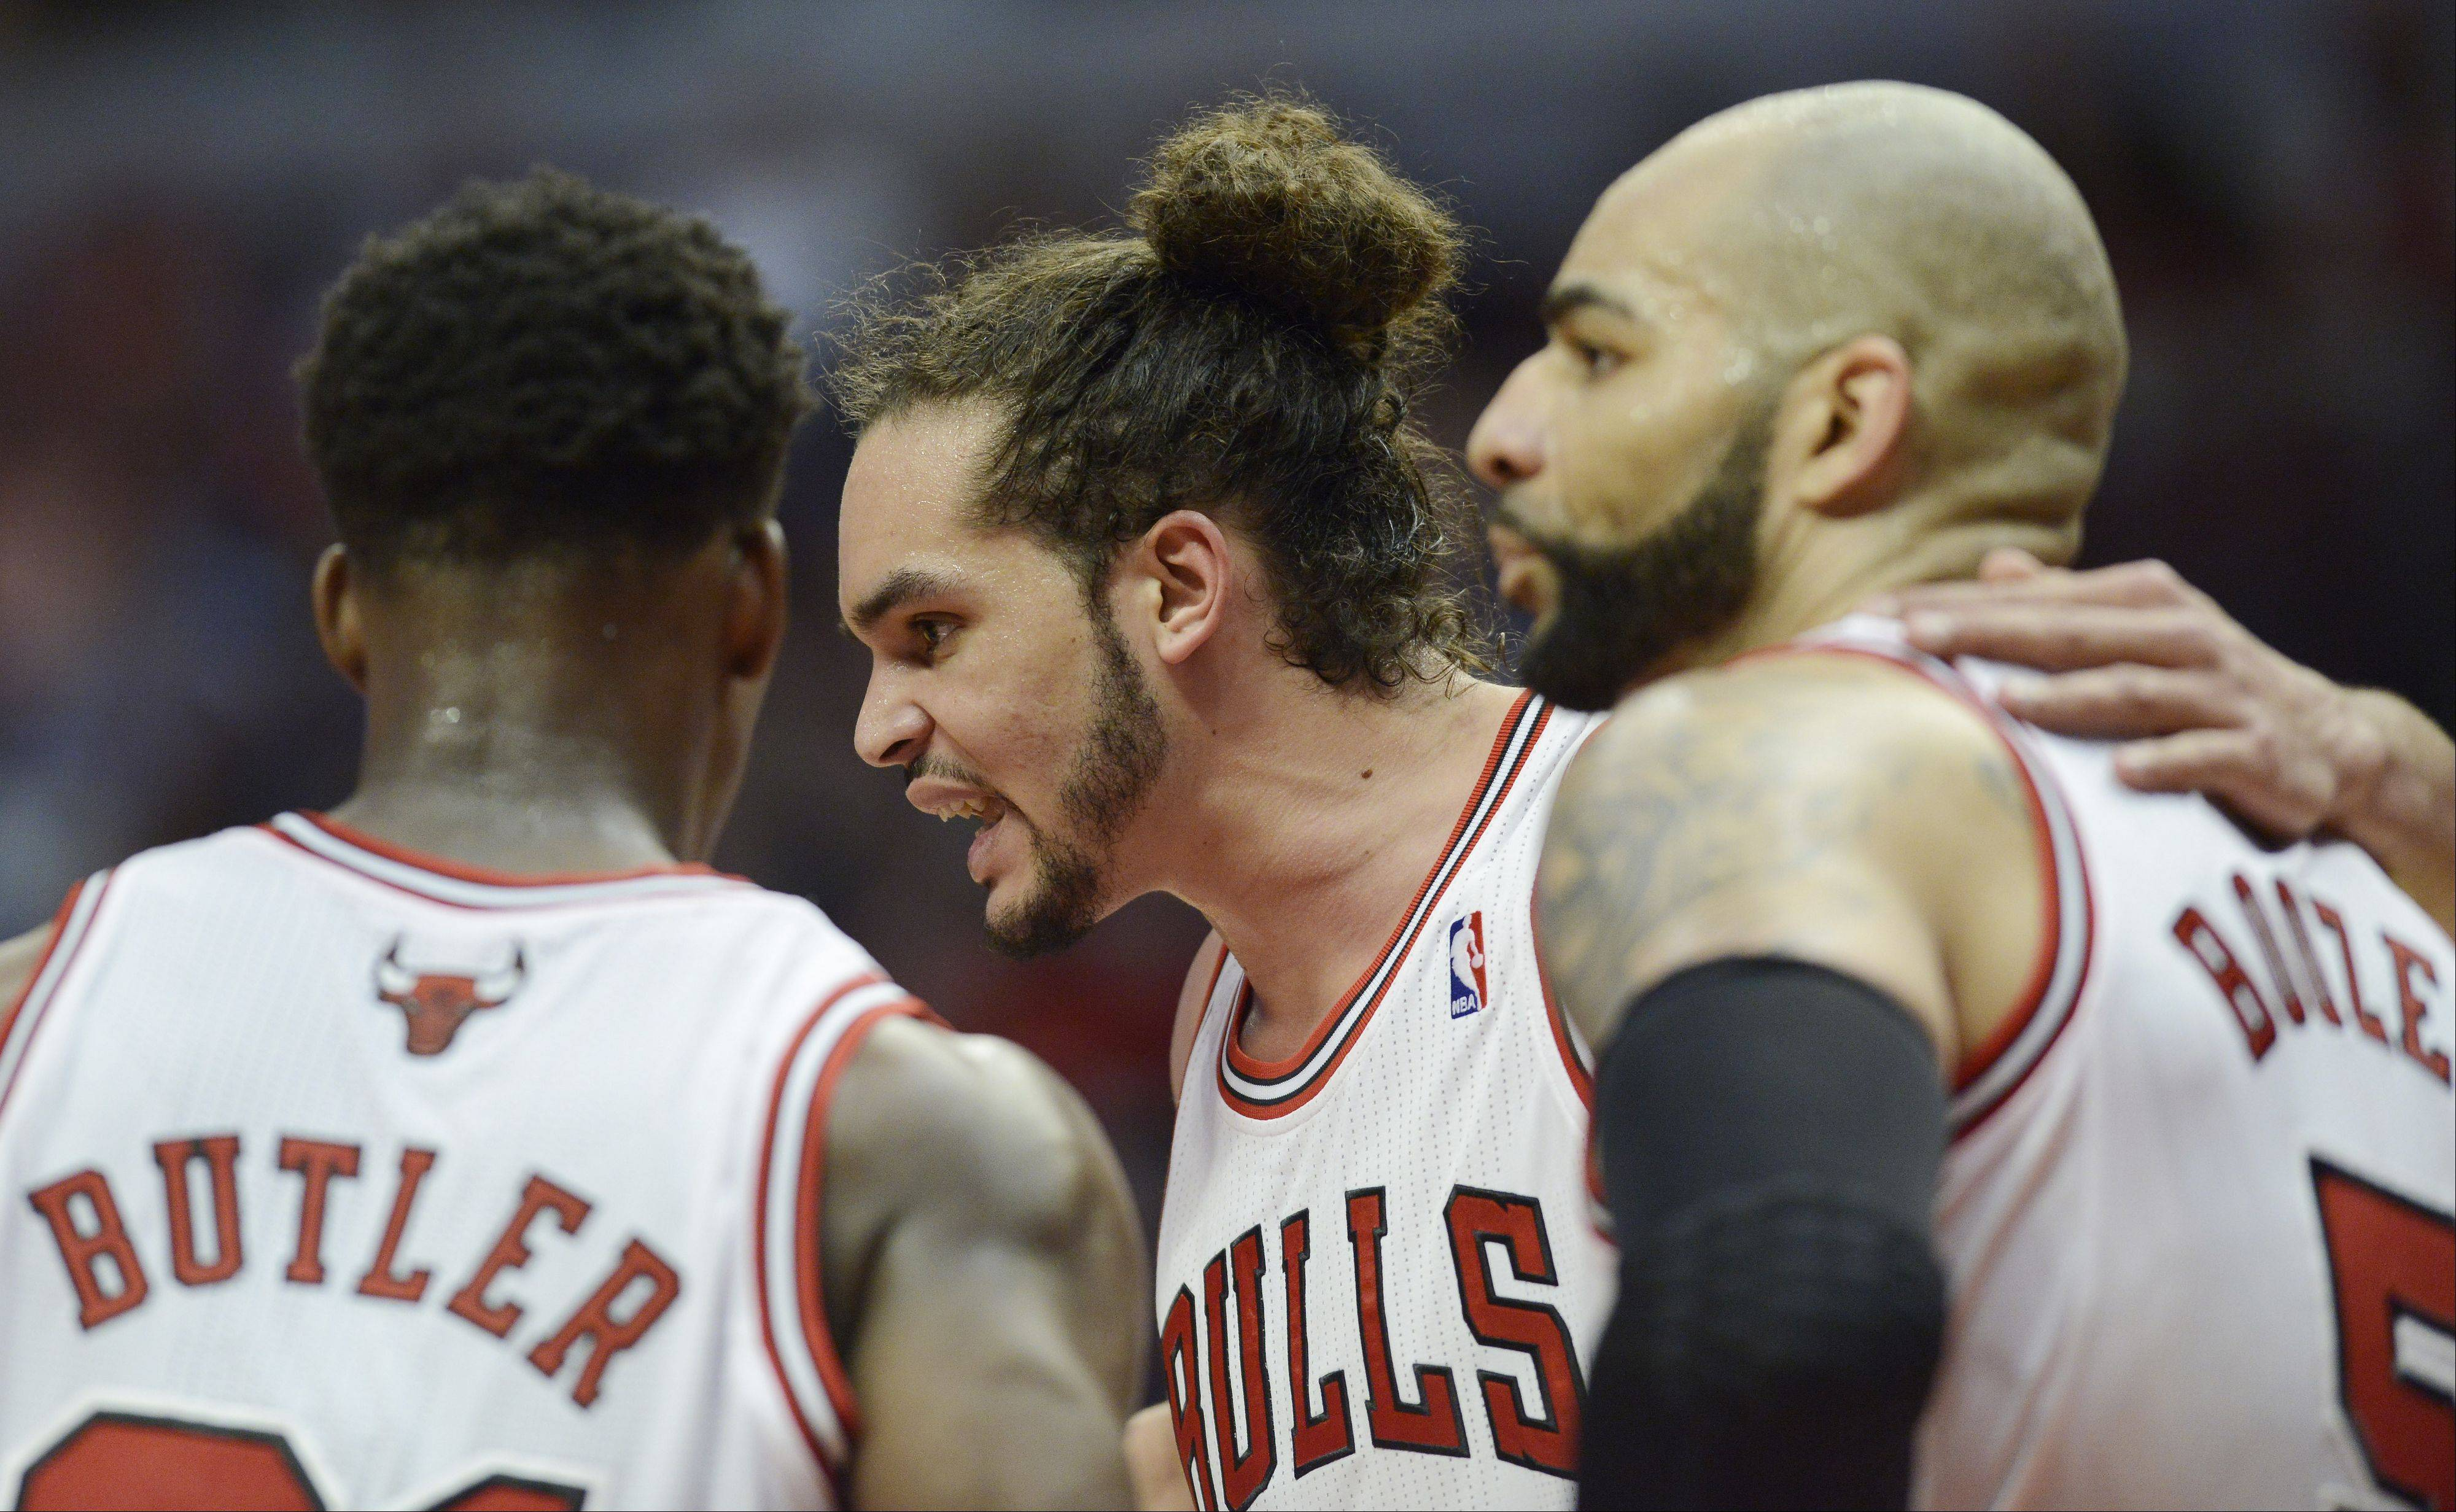 Joakim Noah, middle, has evolved into a spirited leader for the Chicago Bulls. He averaged a double-double in the Brooklyn series.